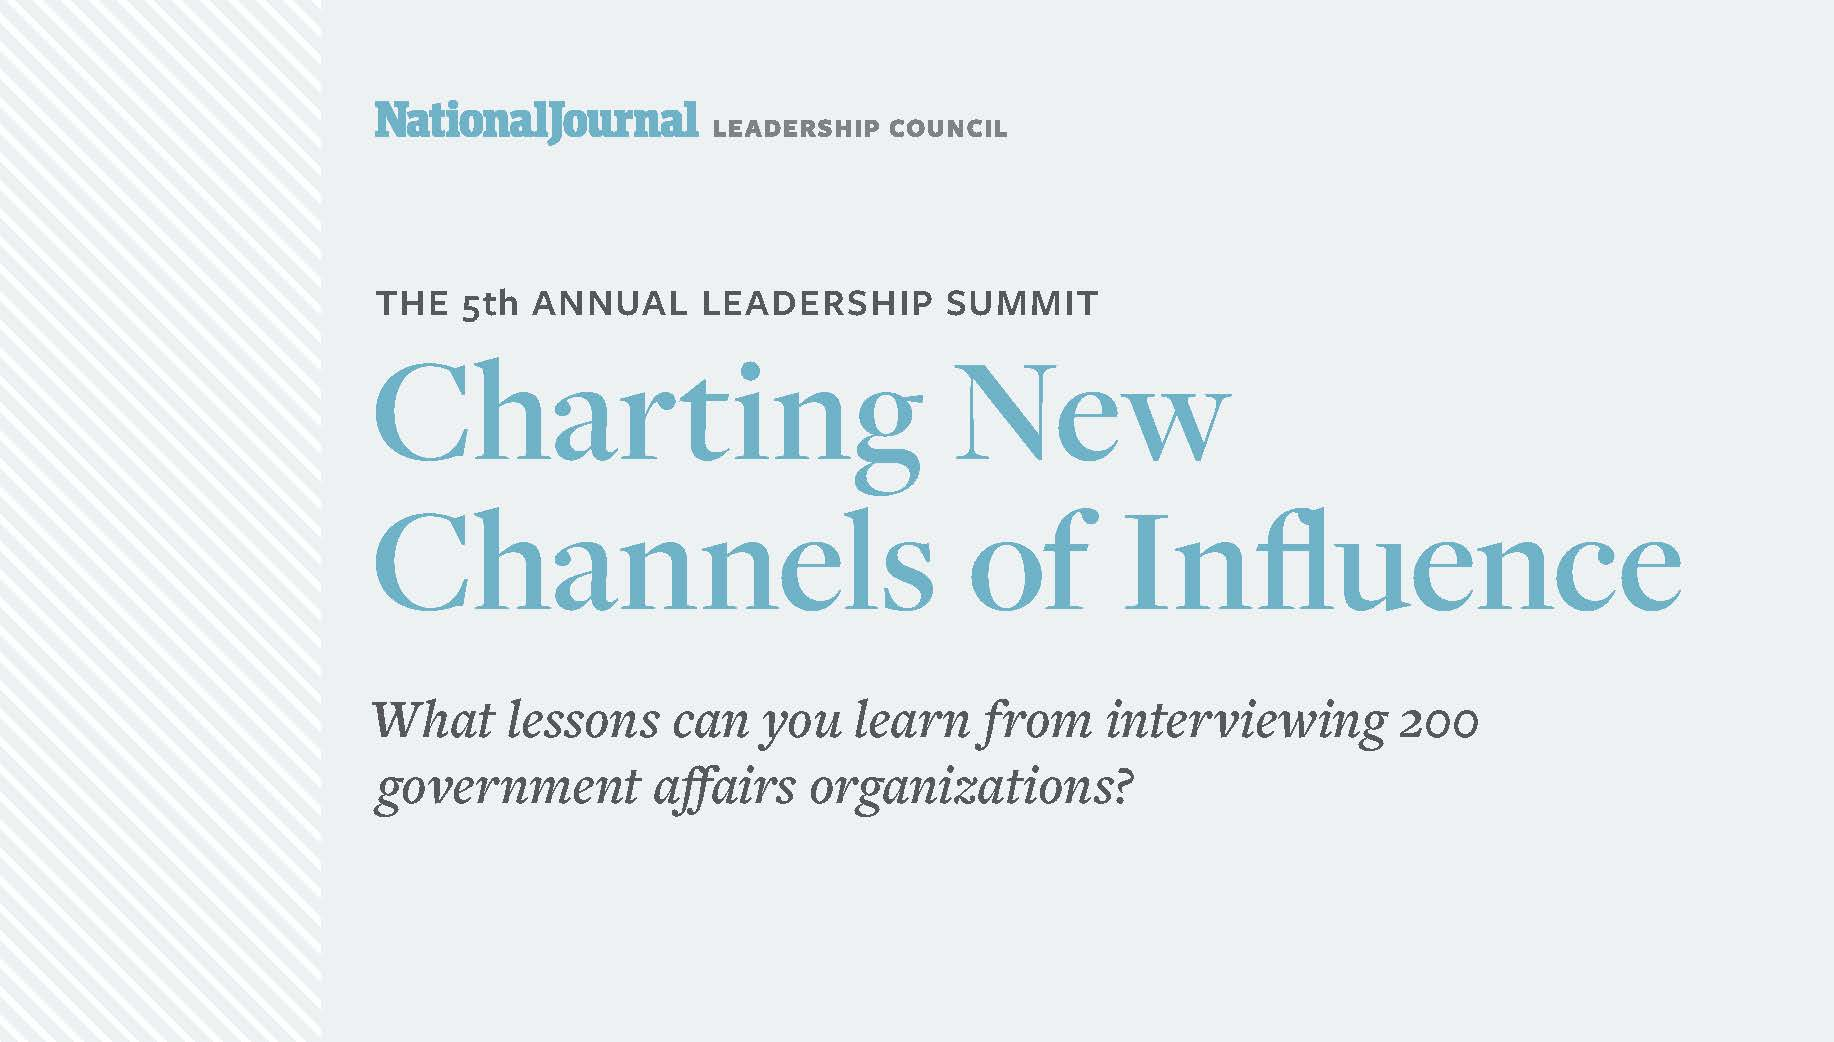 Charting New Channels of Influence